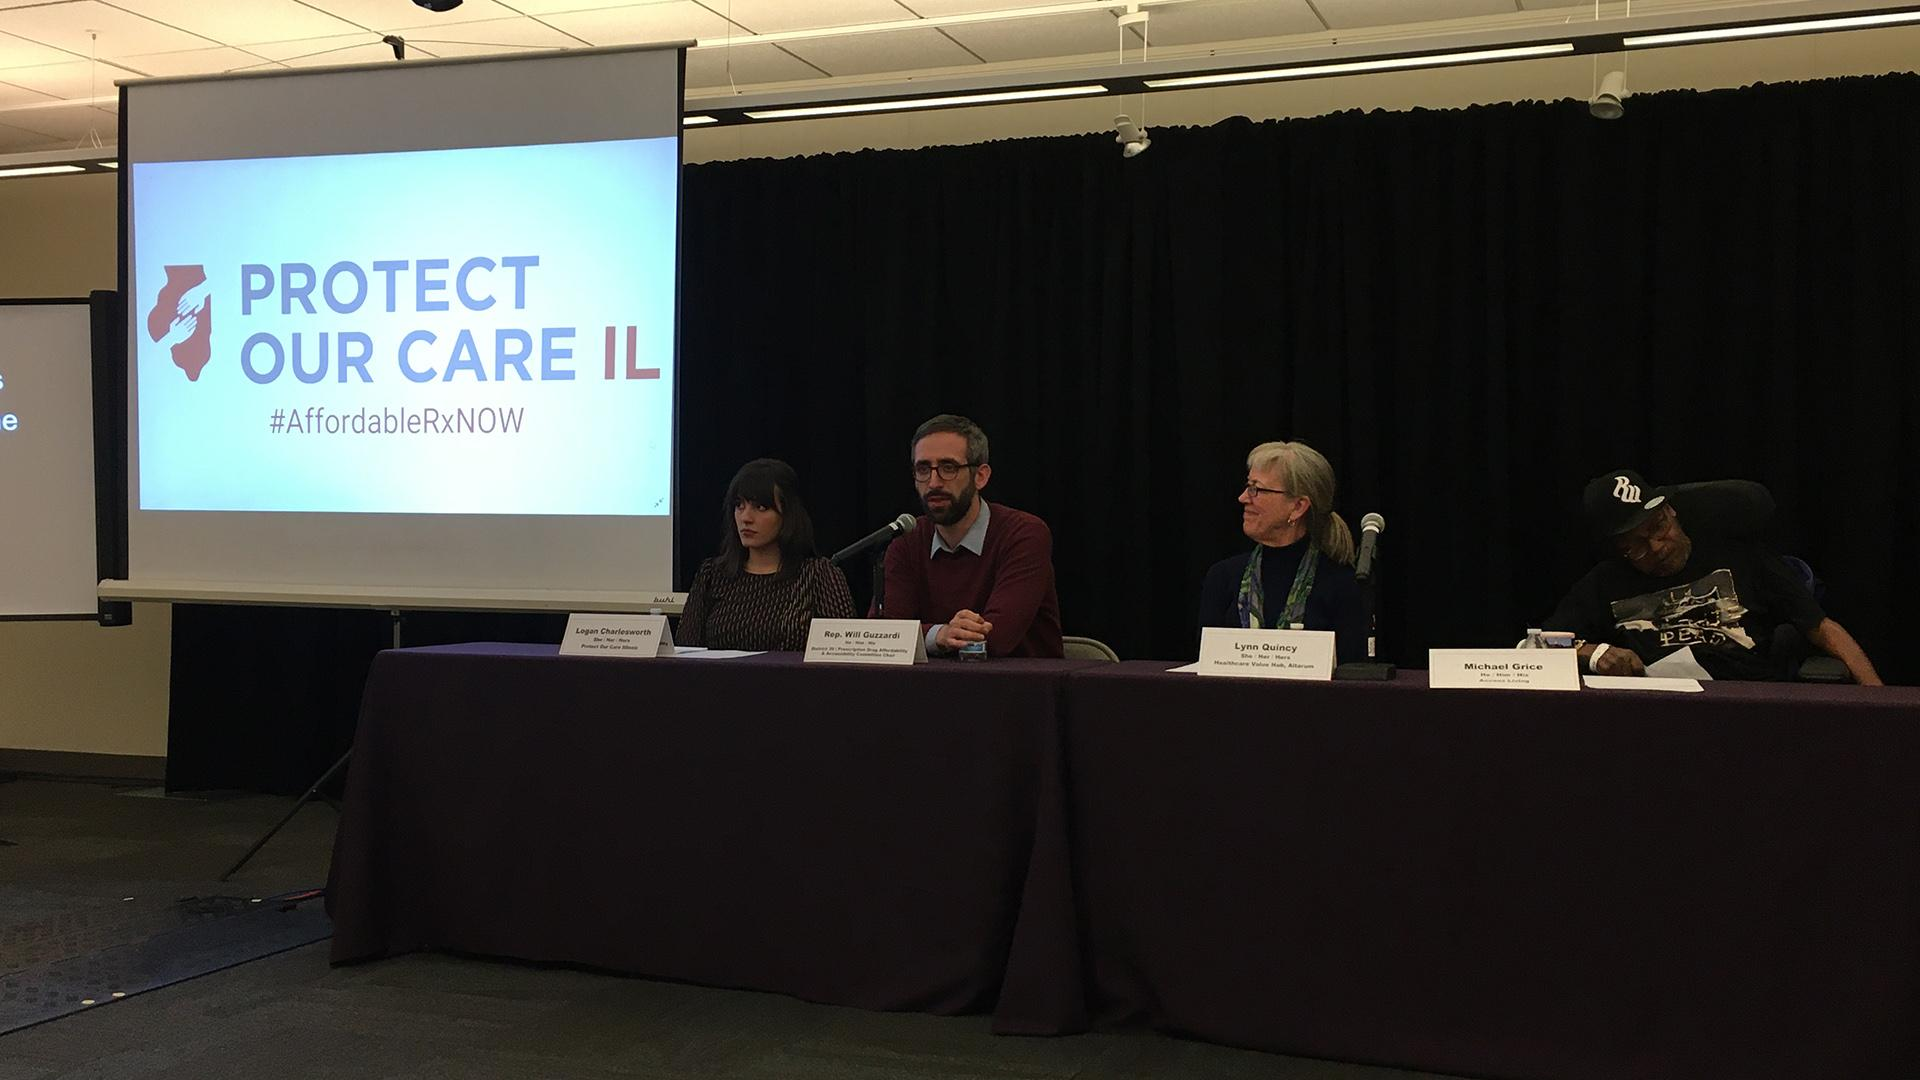 Illinois Rep. Will Guzzardi (second from left) speaks Monday, Feb. 24, 2020 at a press conference about a newly released statewide survey that found the majority of Illinois residents are concerned about future health care costs. (Kristen Thometz / WTTW News)